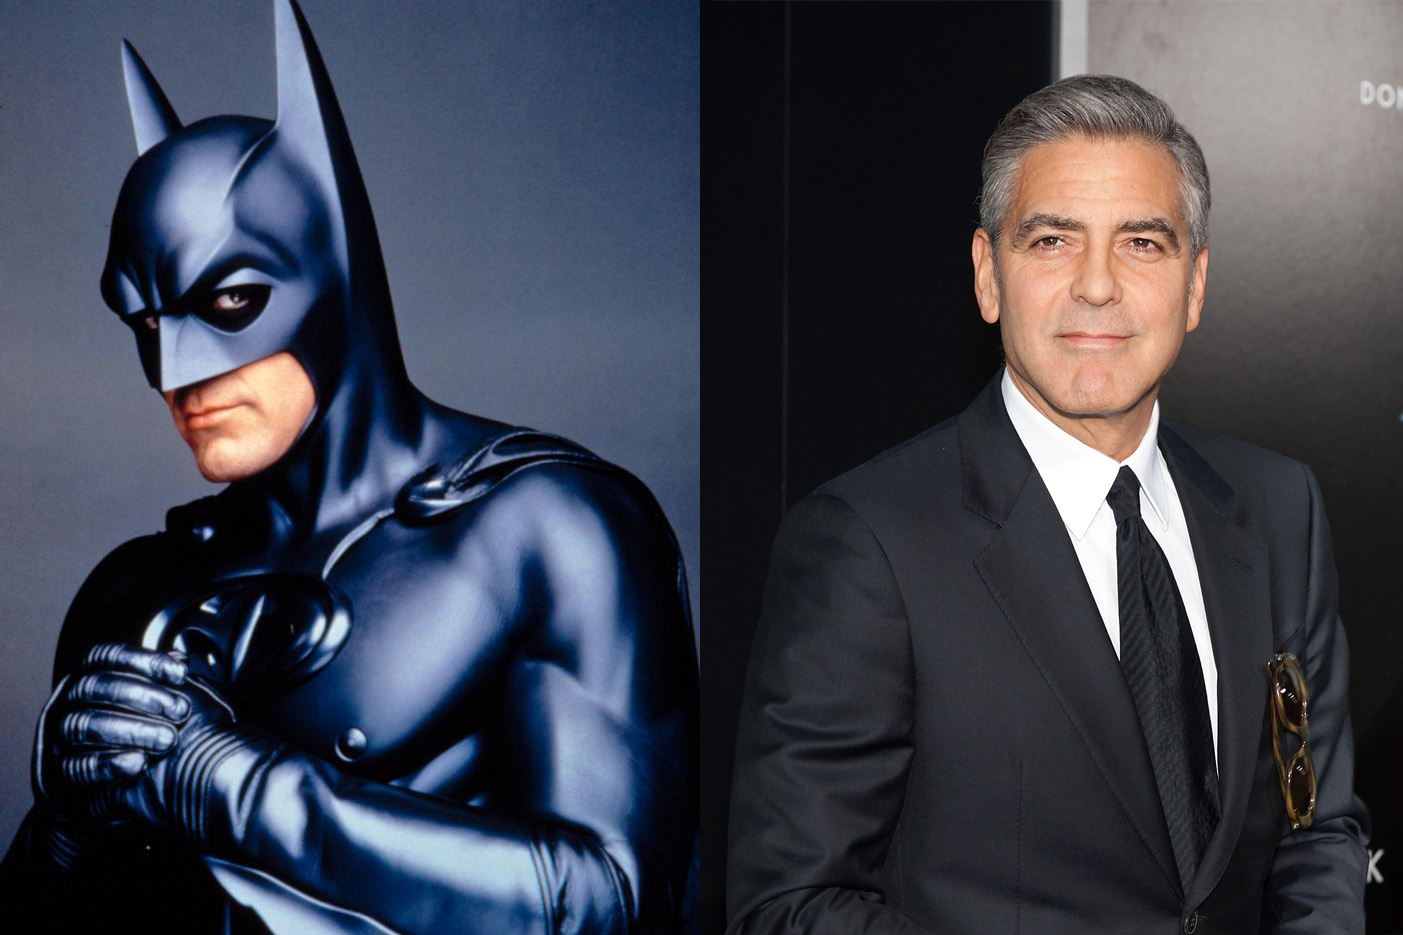 Batman & Robin could have killed Clooney's career. But along came O Brother, Where Art Thou? in 2000. Since he's been palling around on the Ocean's Eleven set and earning critical acclaim for films like The Descendants.